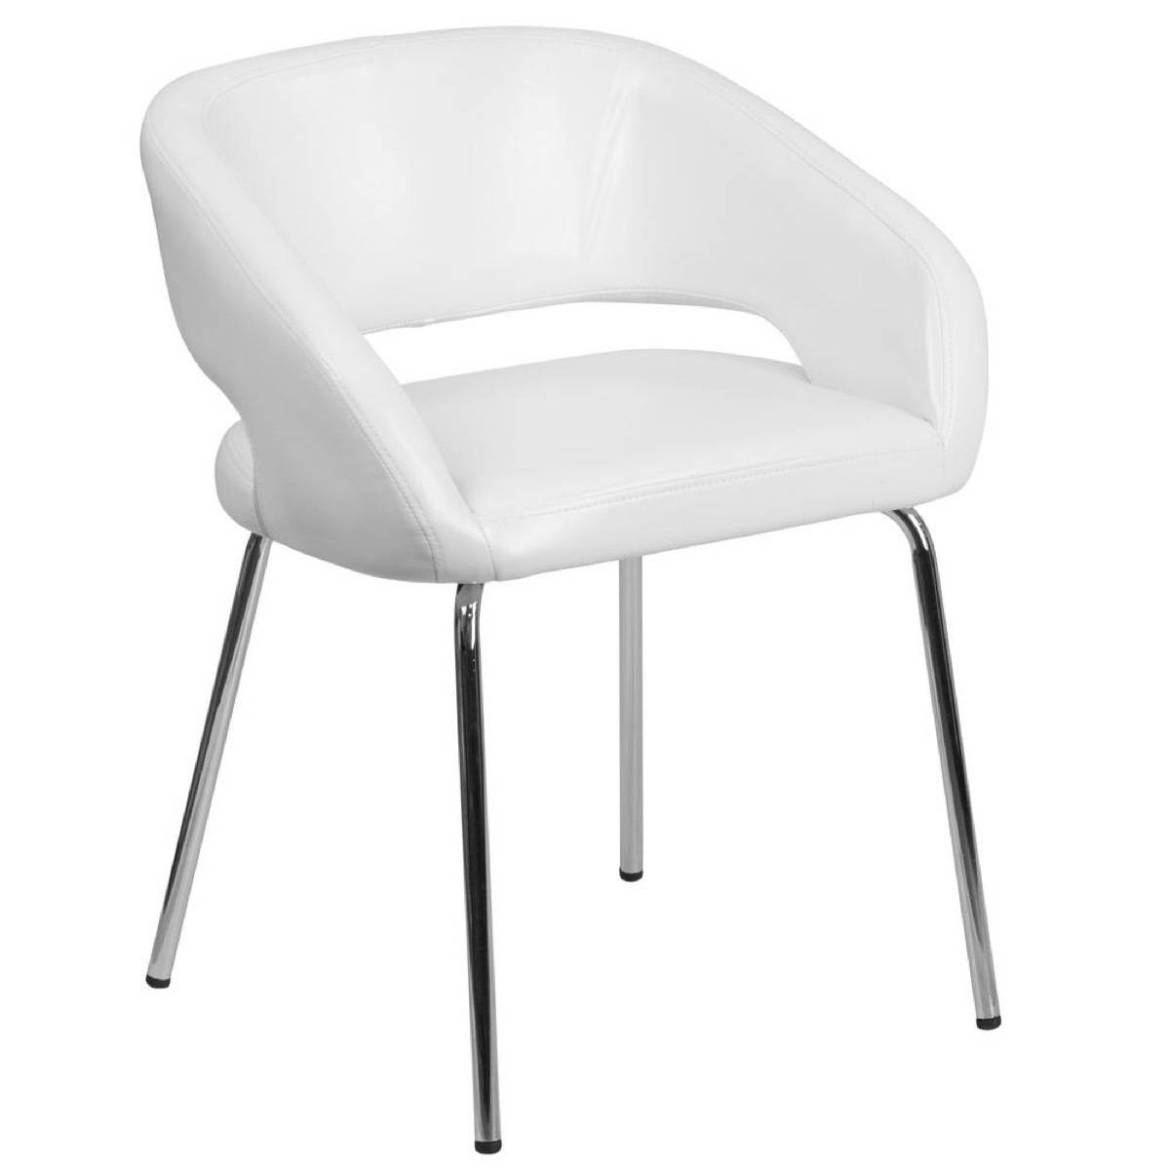 Contemporary leather side chair from The Home Depot